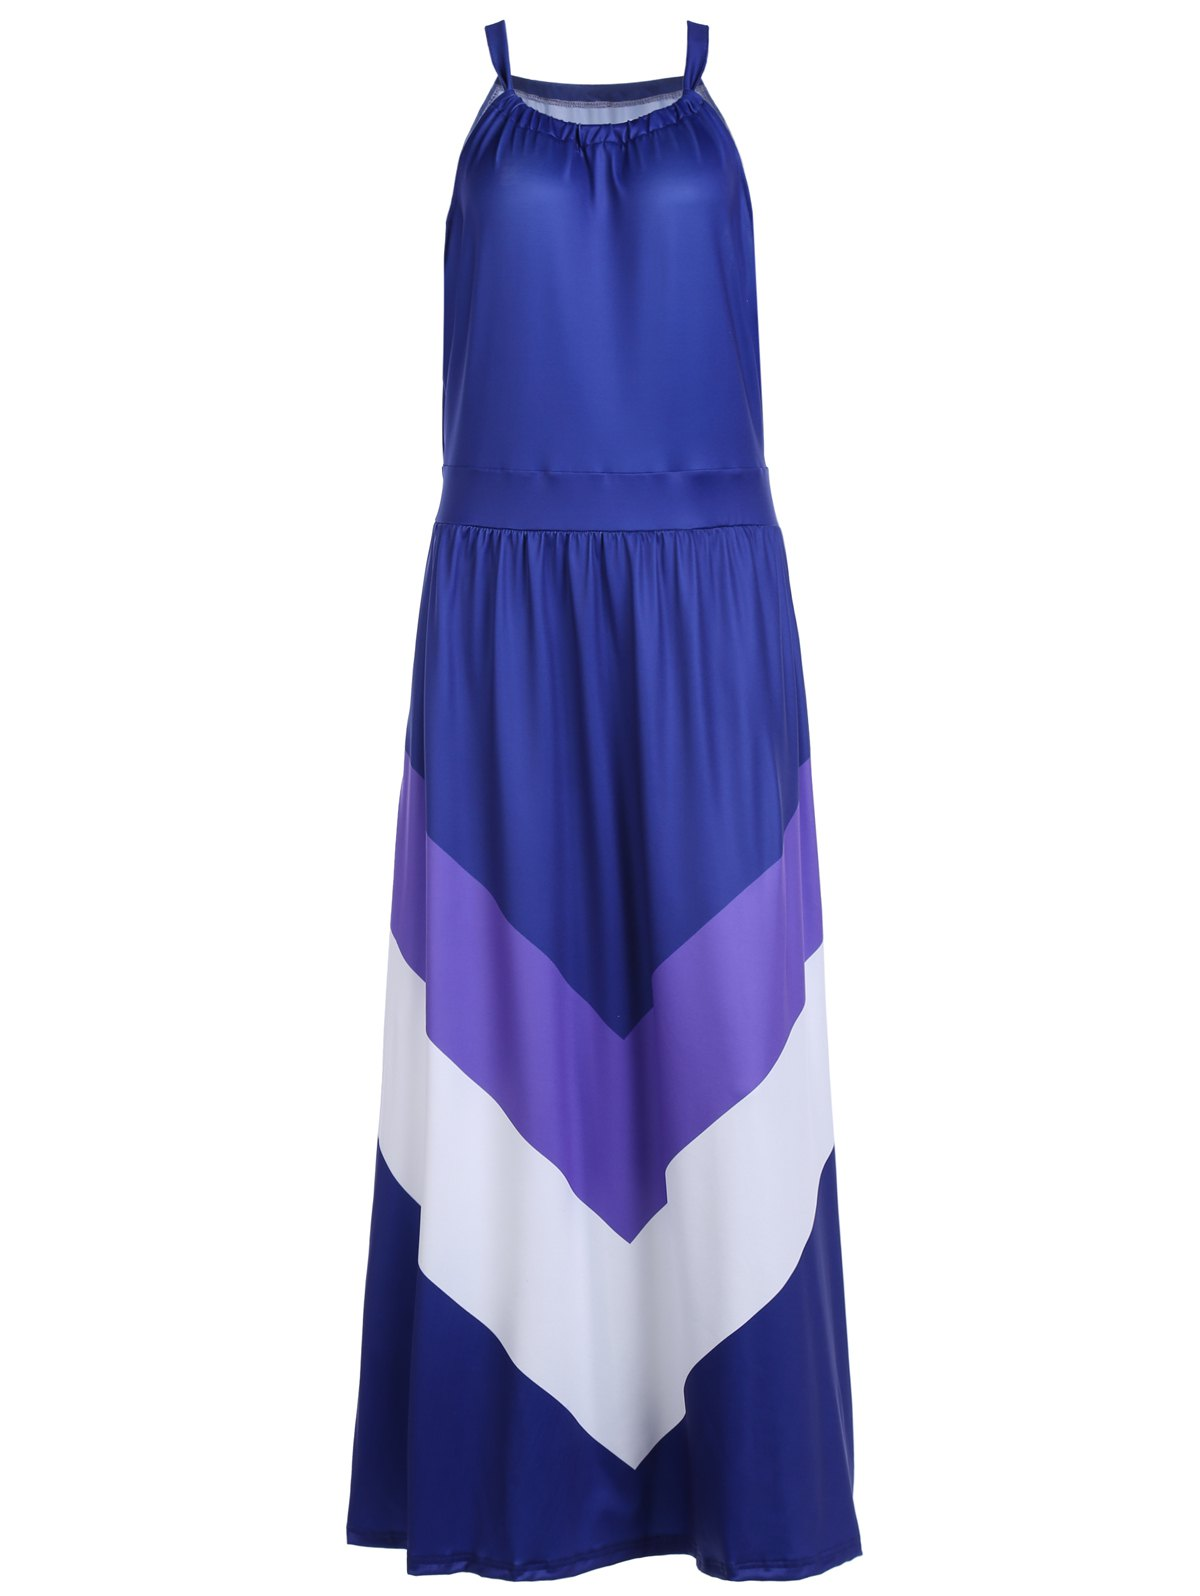 Brief Women's Halter Color Block Floor-Length Sleeveless Dress - DEEP BLUE L